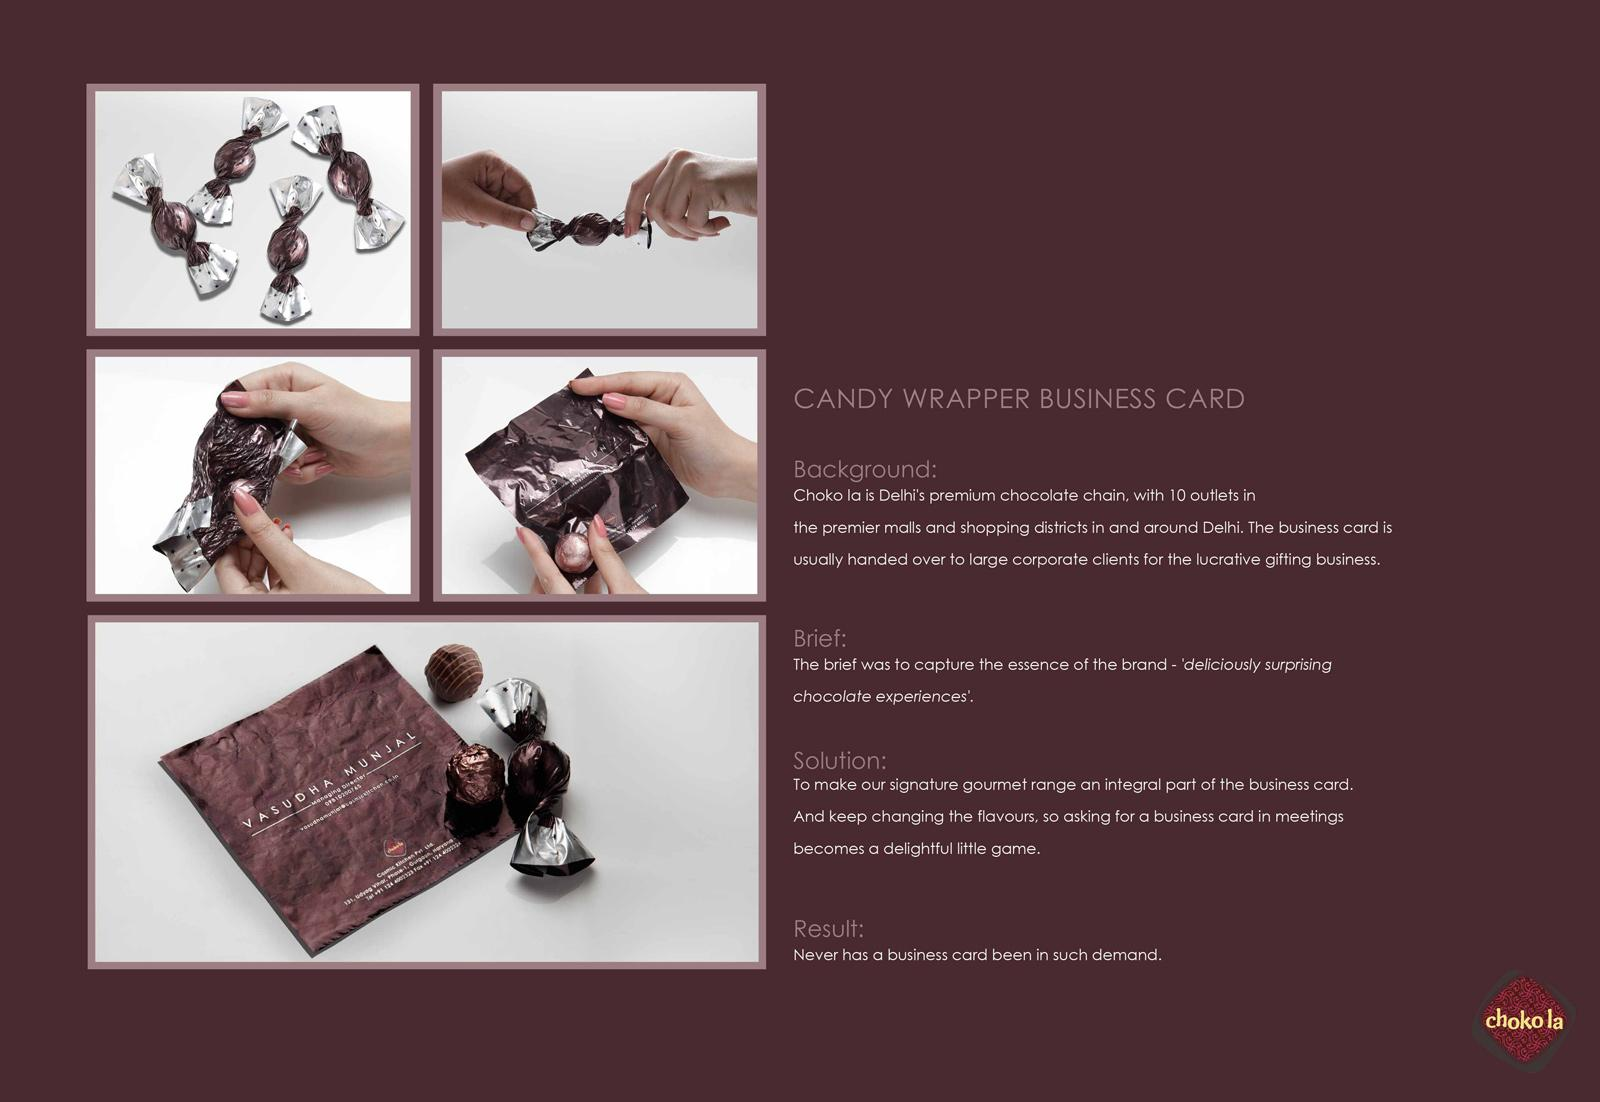 Choko la Direct Ad -  Candy wrapper business card